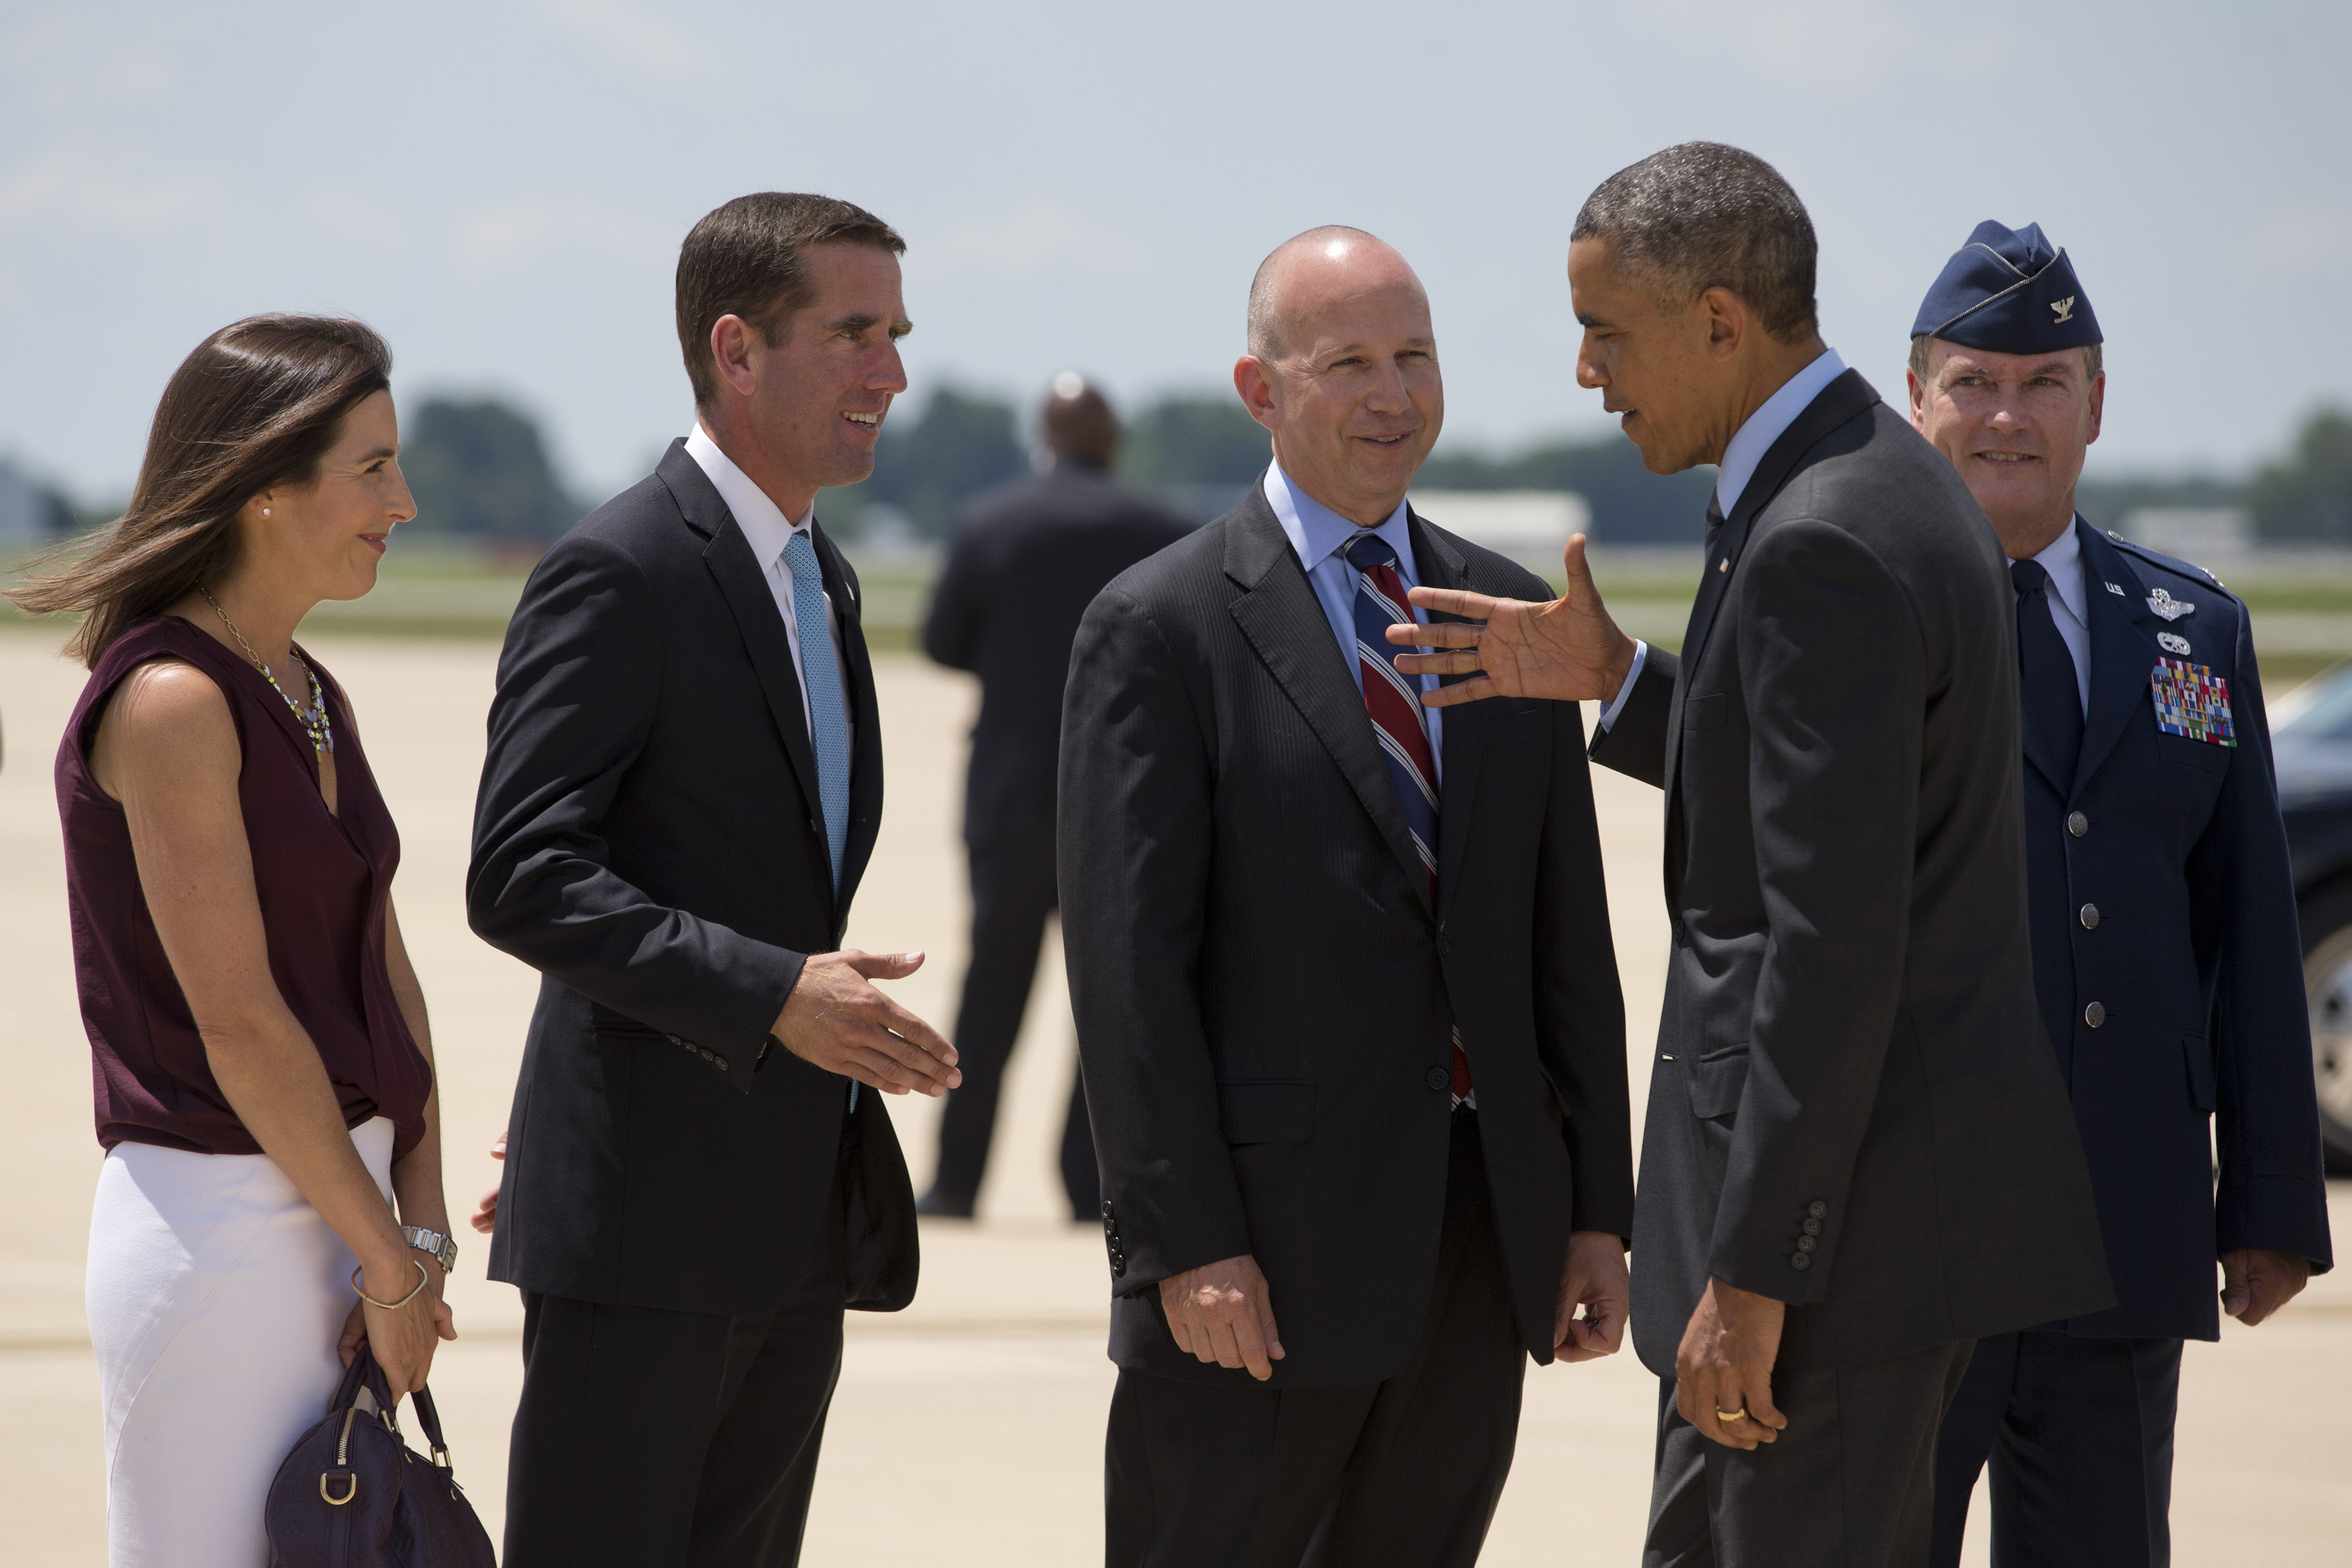 President Barack Obama shakes hands with Delaware Attorney General Beau Biden, left, next to Biden's wife, Hallie Biden, far left, and Delaware Governor Jack Markell as he arrives at New Castle Air National Guard Base in New Castle, Del., on July 17, 2014.